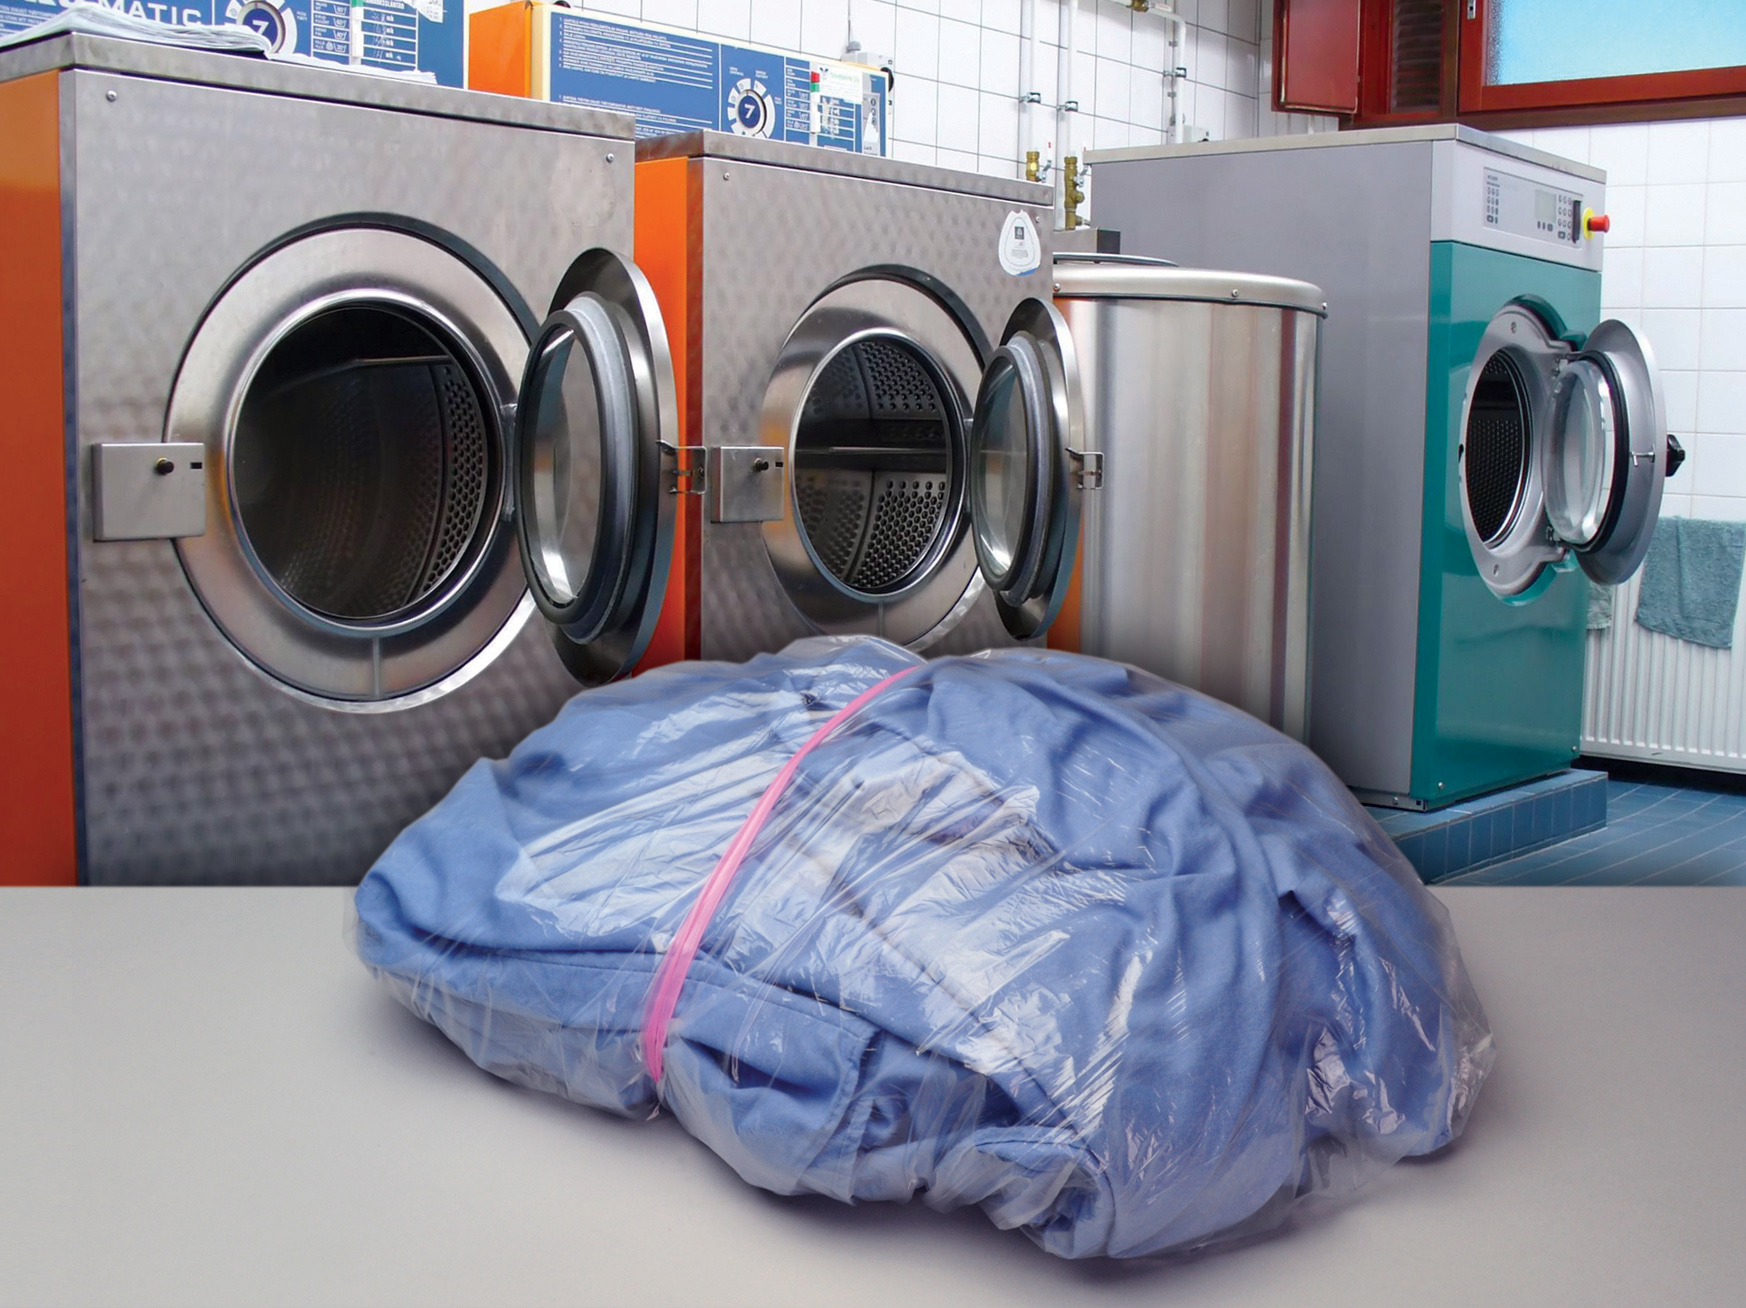 Laundry bag applications